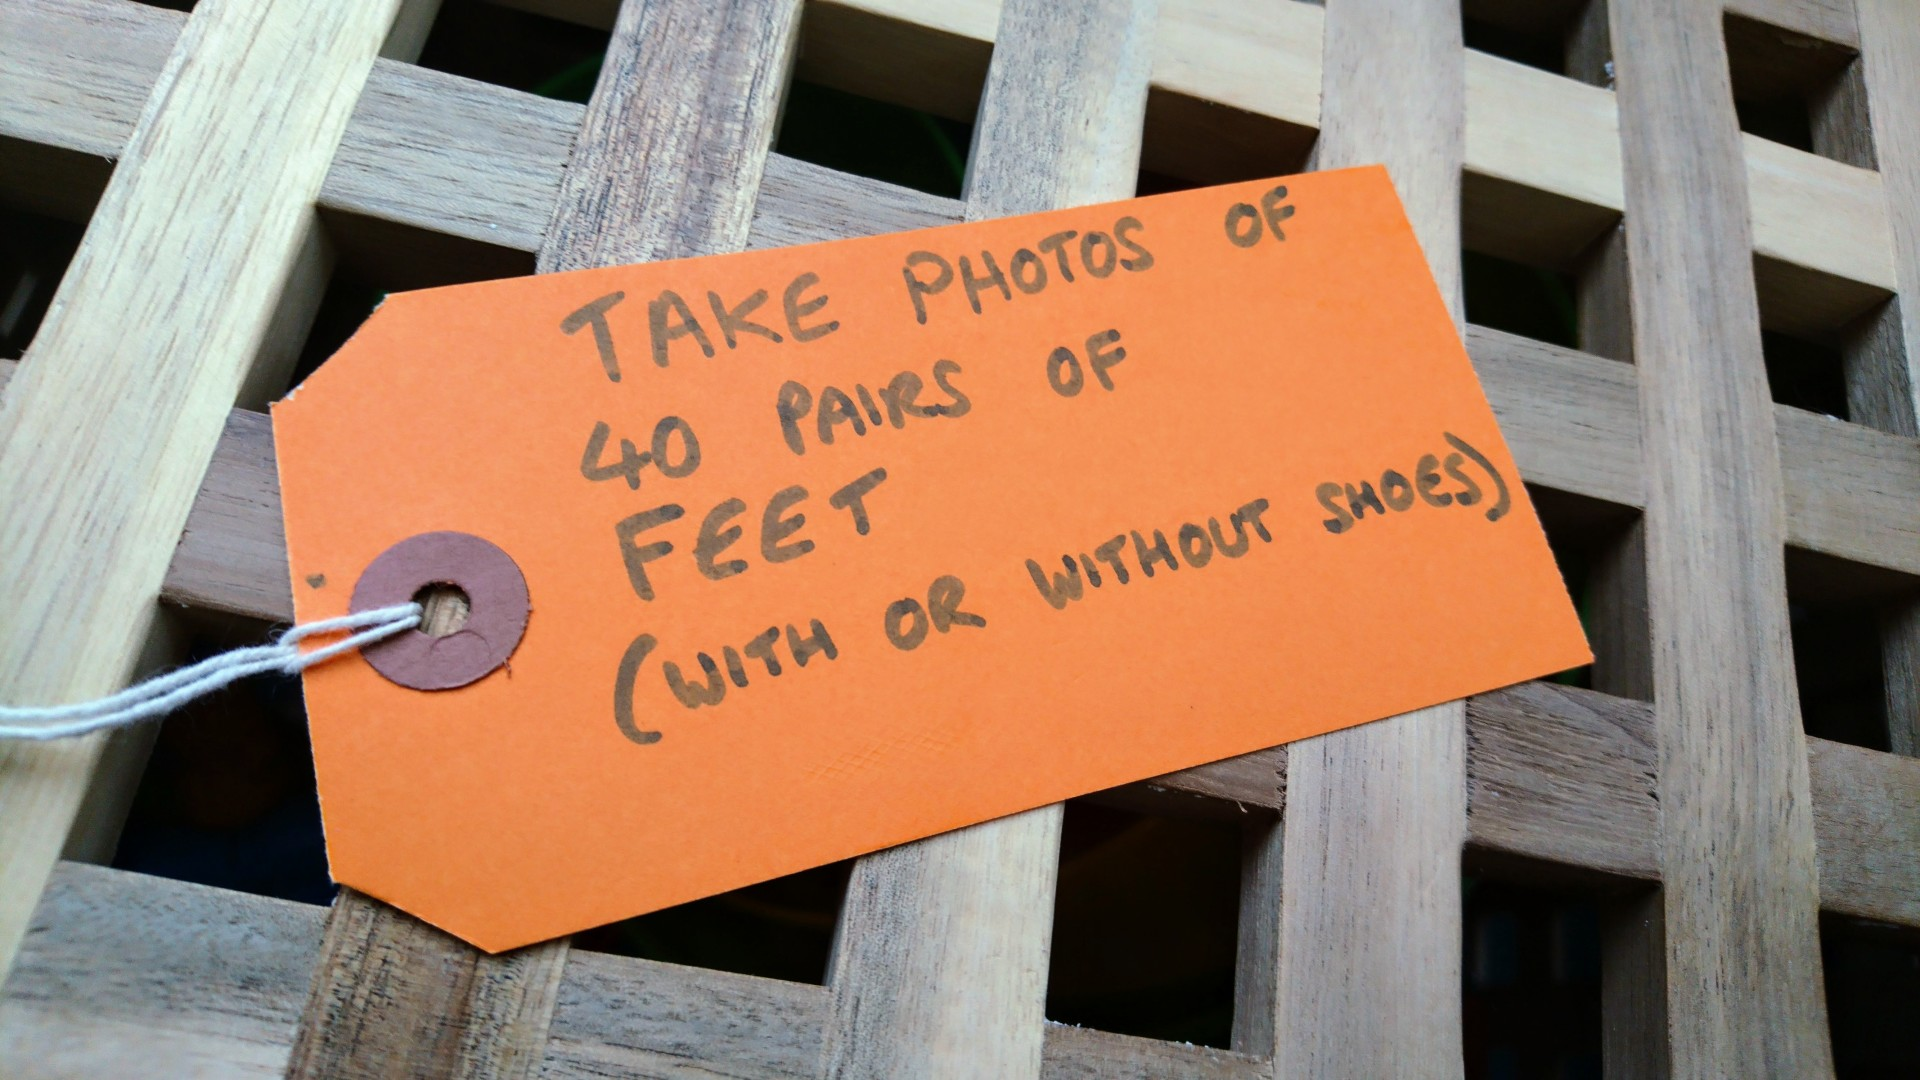 Take Photos of 40 pairs of feet (with or without shoes)